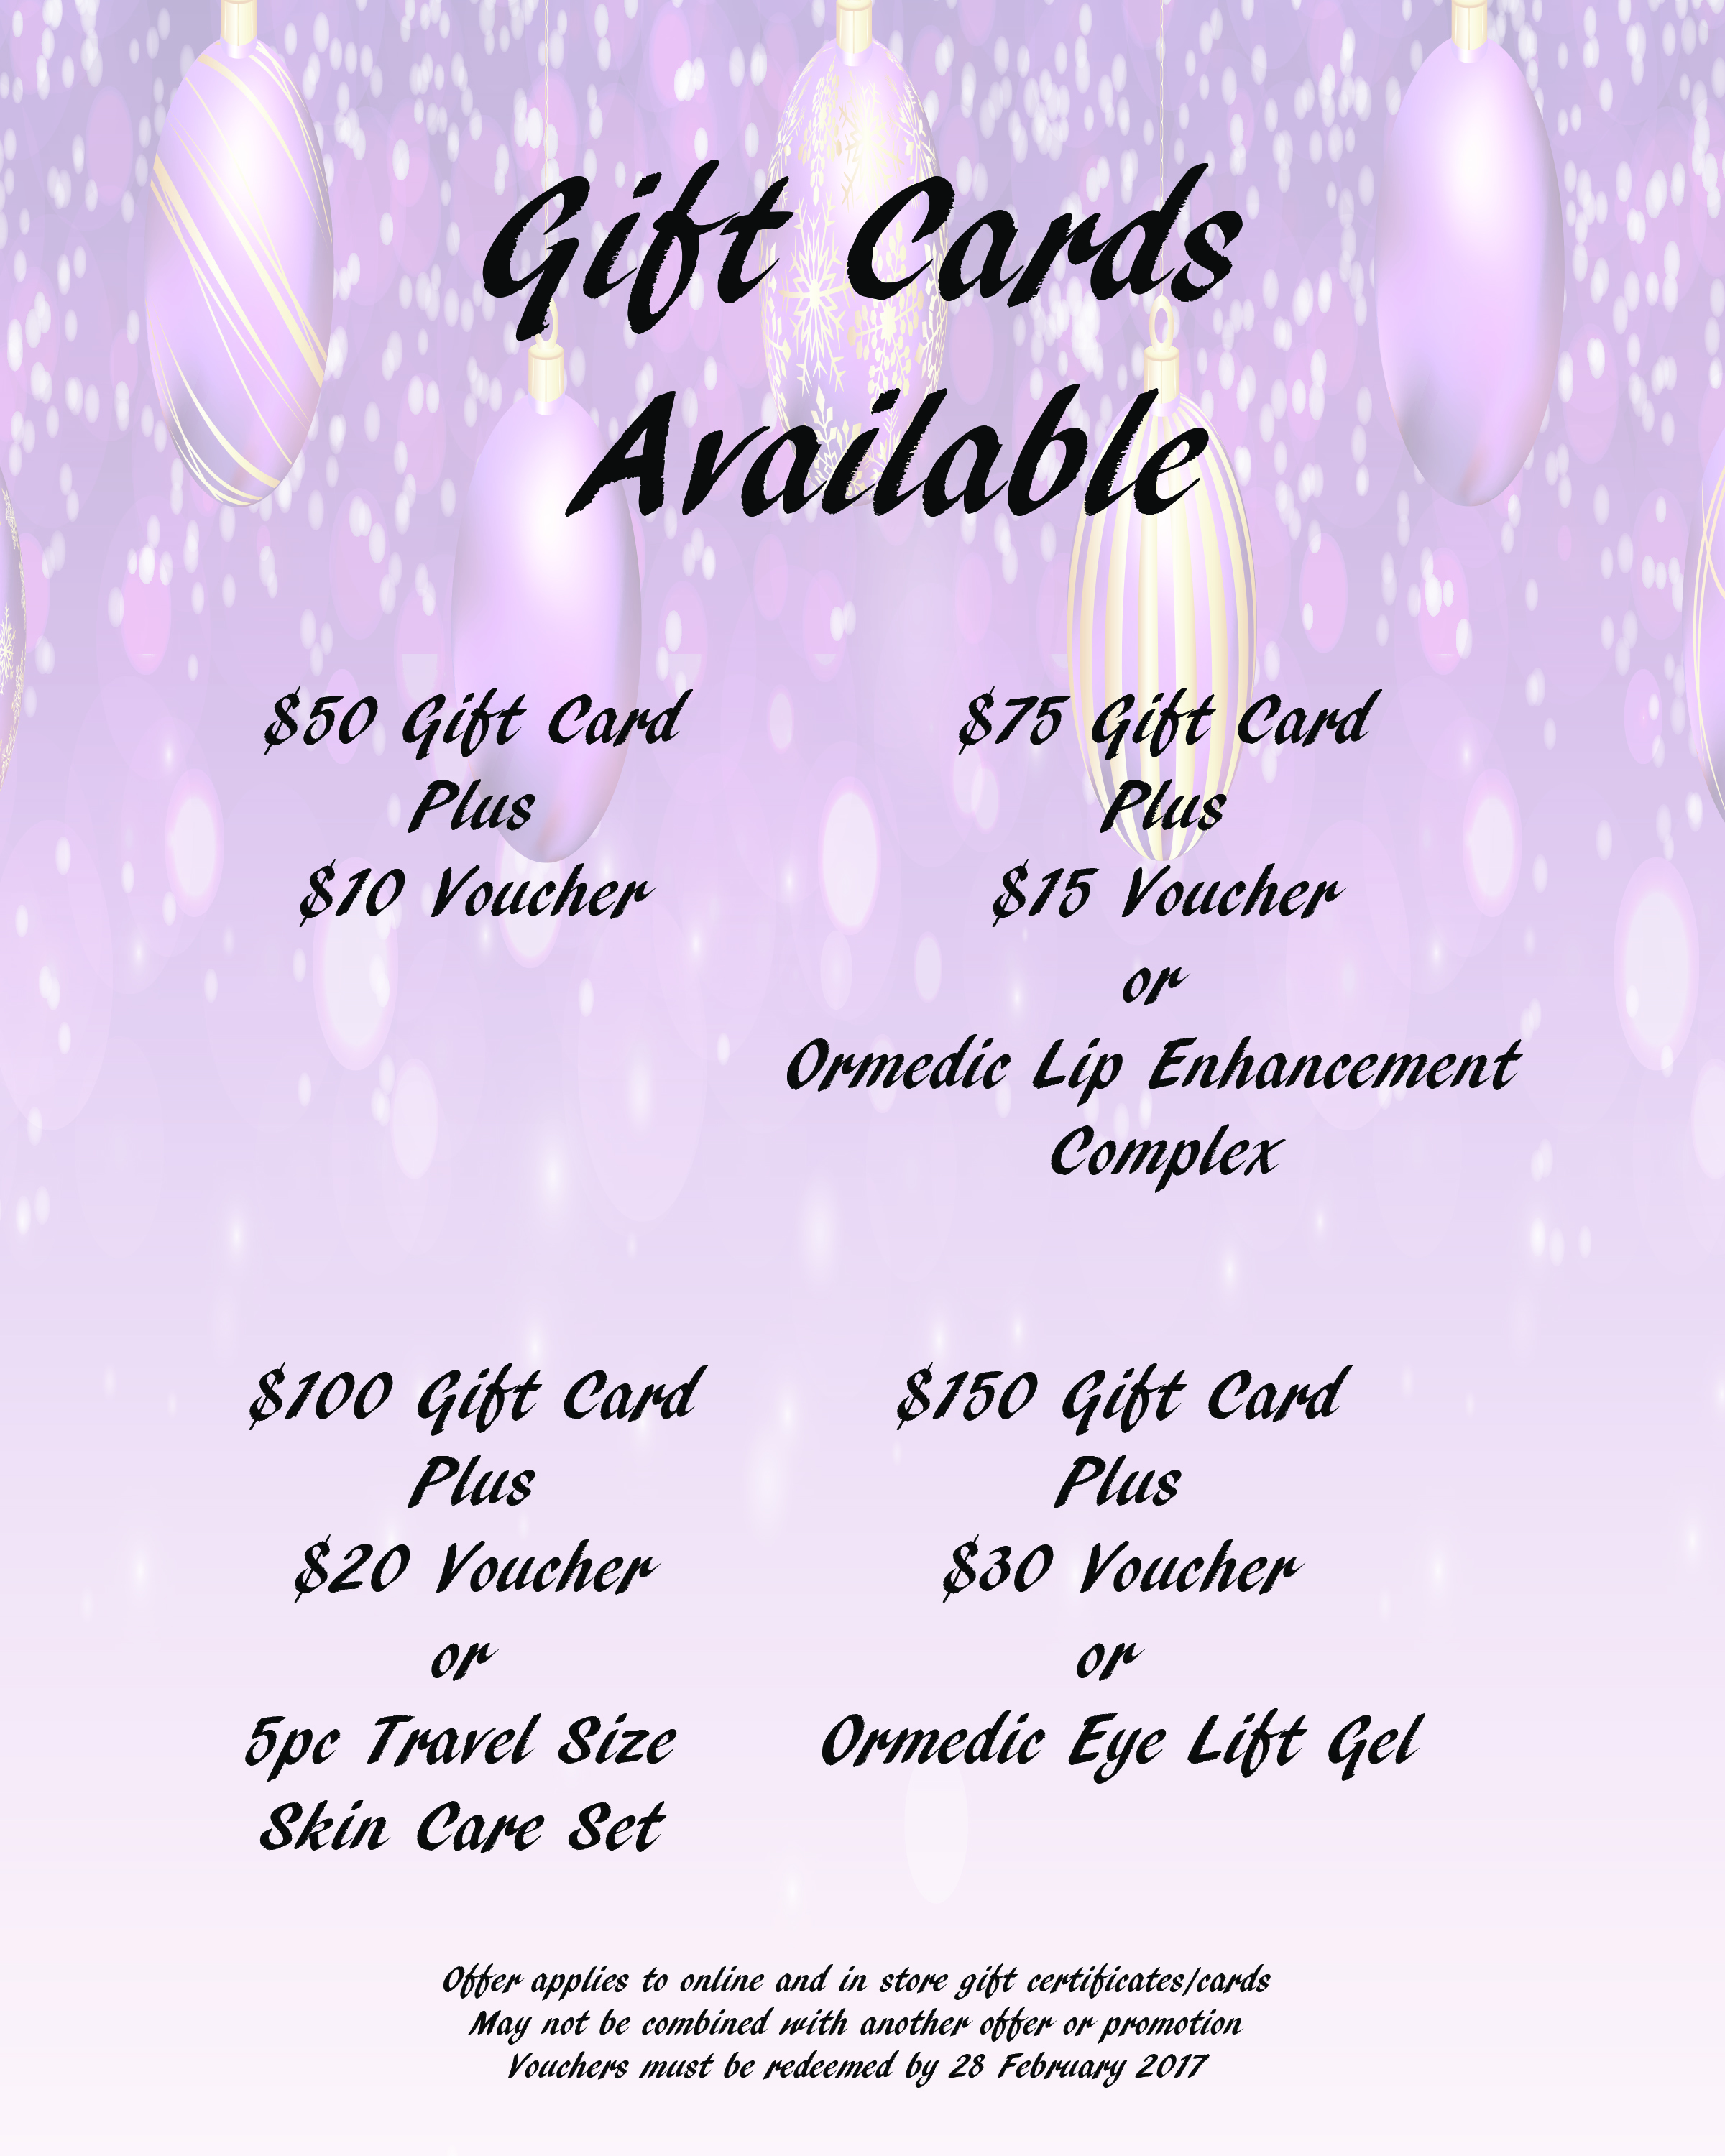 Free gift with gift card purchase brow to toe waxing and skin care gift cards are available in studio and online gift certificates are available 247 via our booking site you may choose a specific service such as eyelash negle Gallery